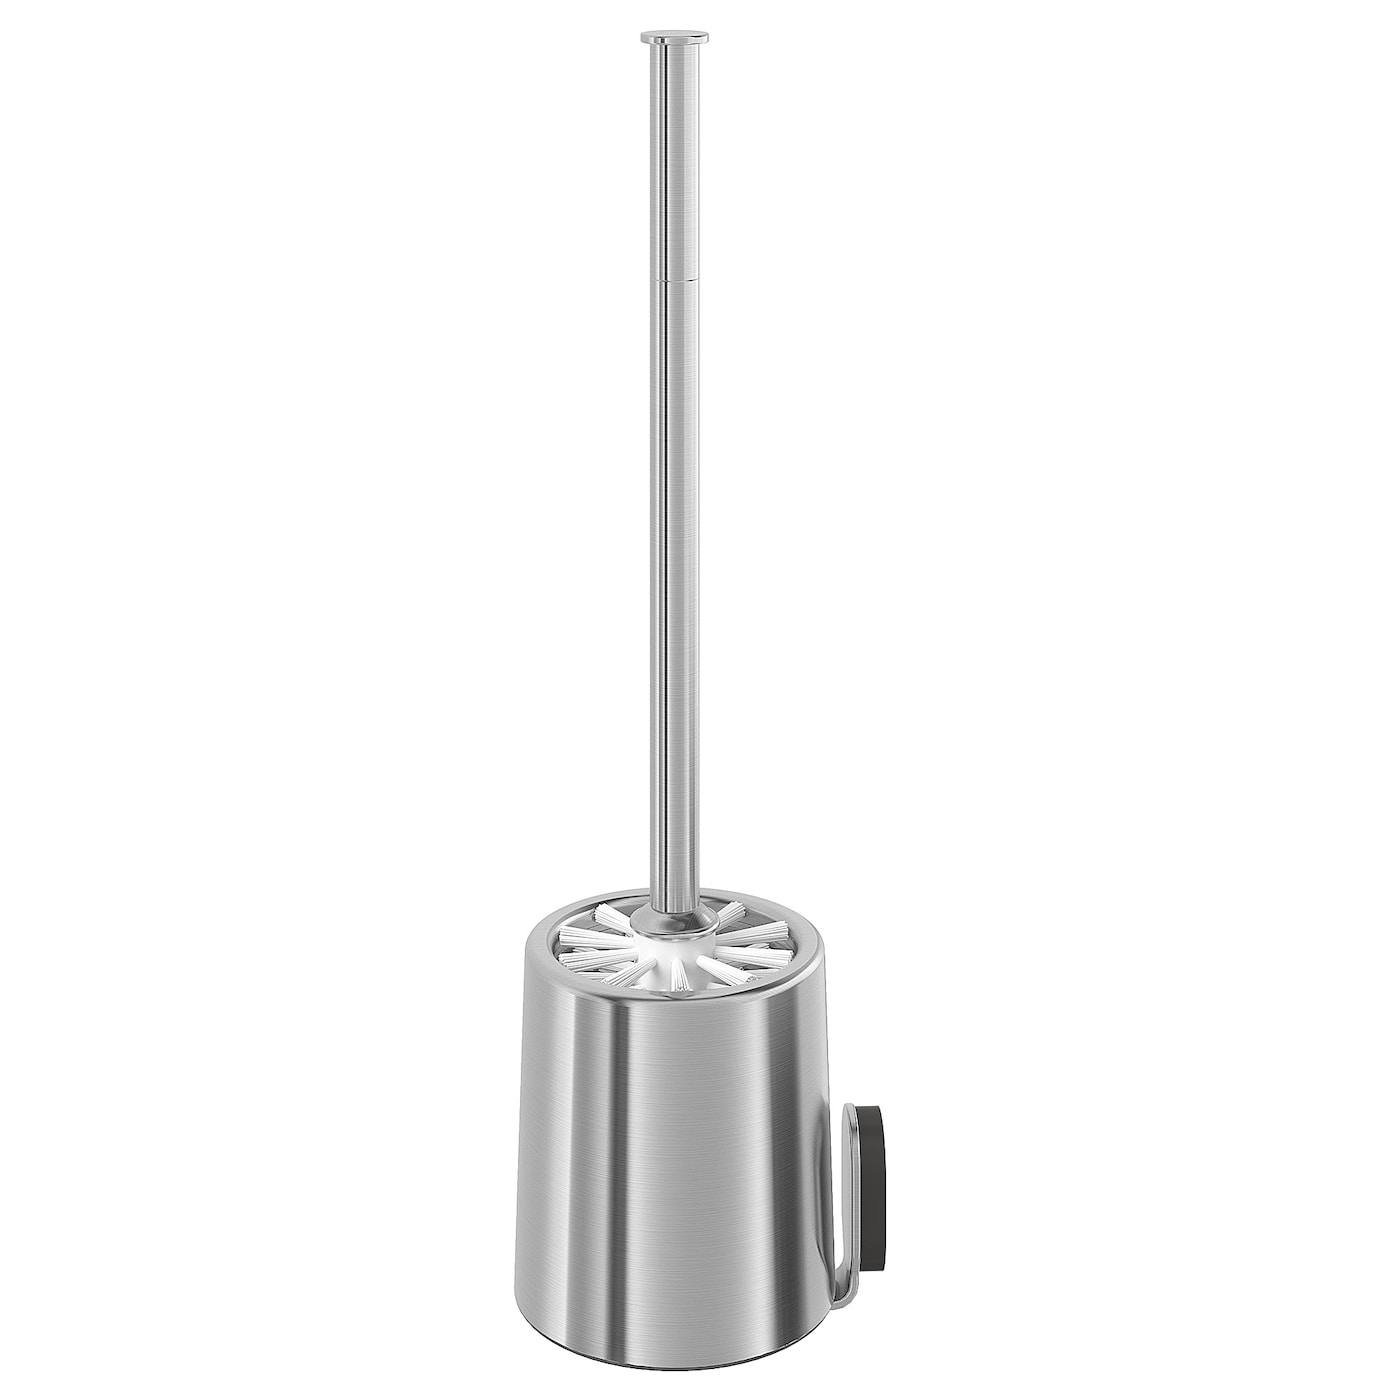 IKEA BROGRUND toilet brush Made from stainless steel that is durable and easy to clean.